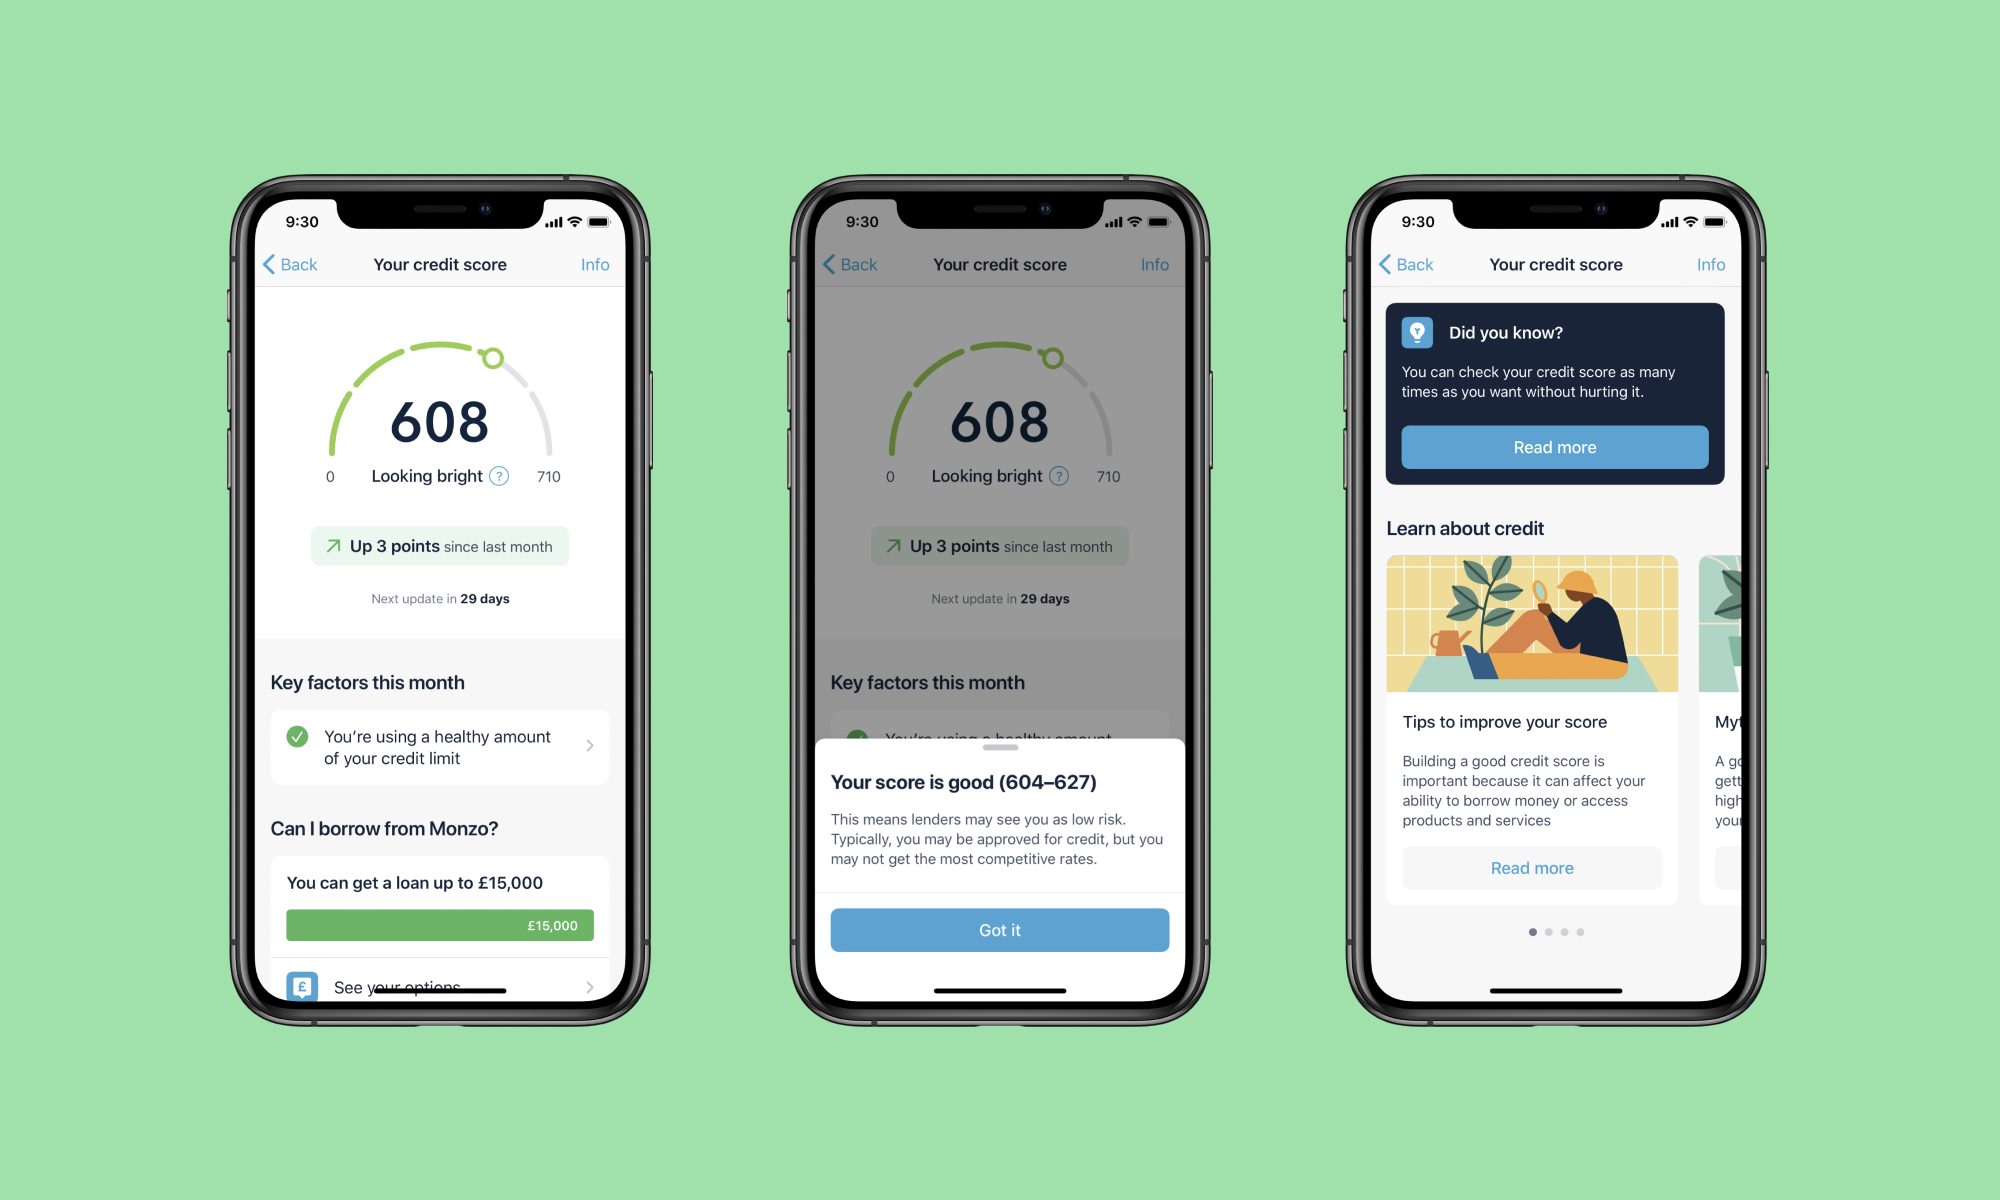 Some of the final iOS designs of the credit score feature.